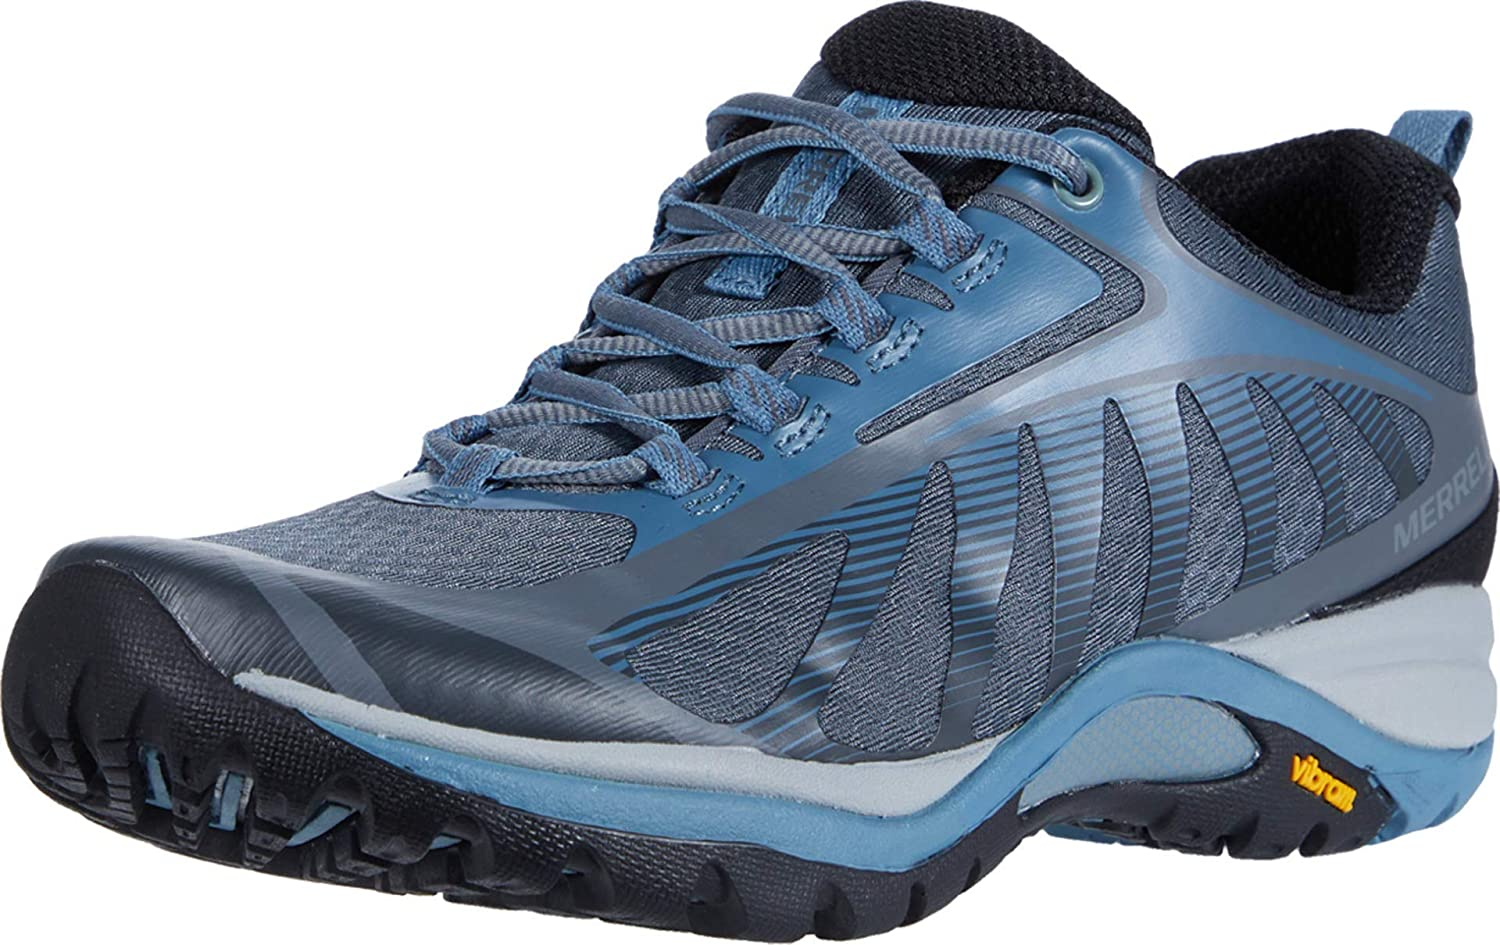 Merrell Women's Siren Edge 3 Hiking Shoe